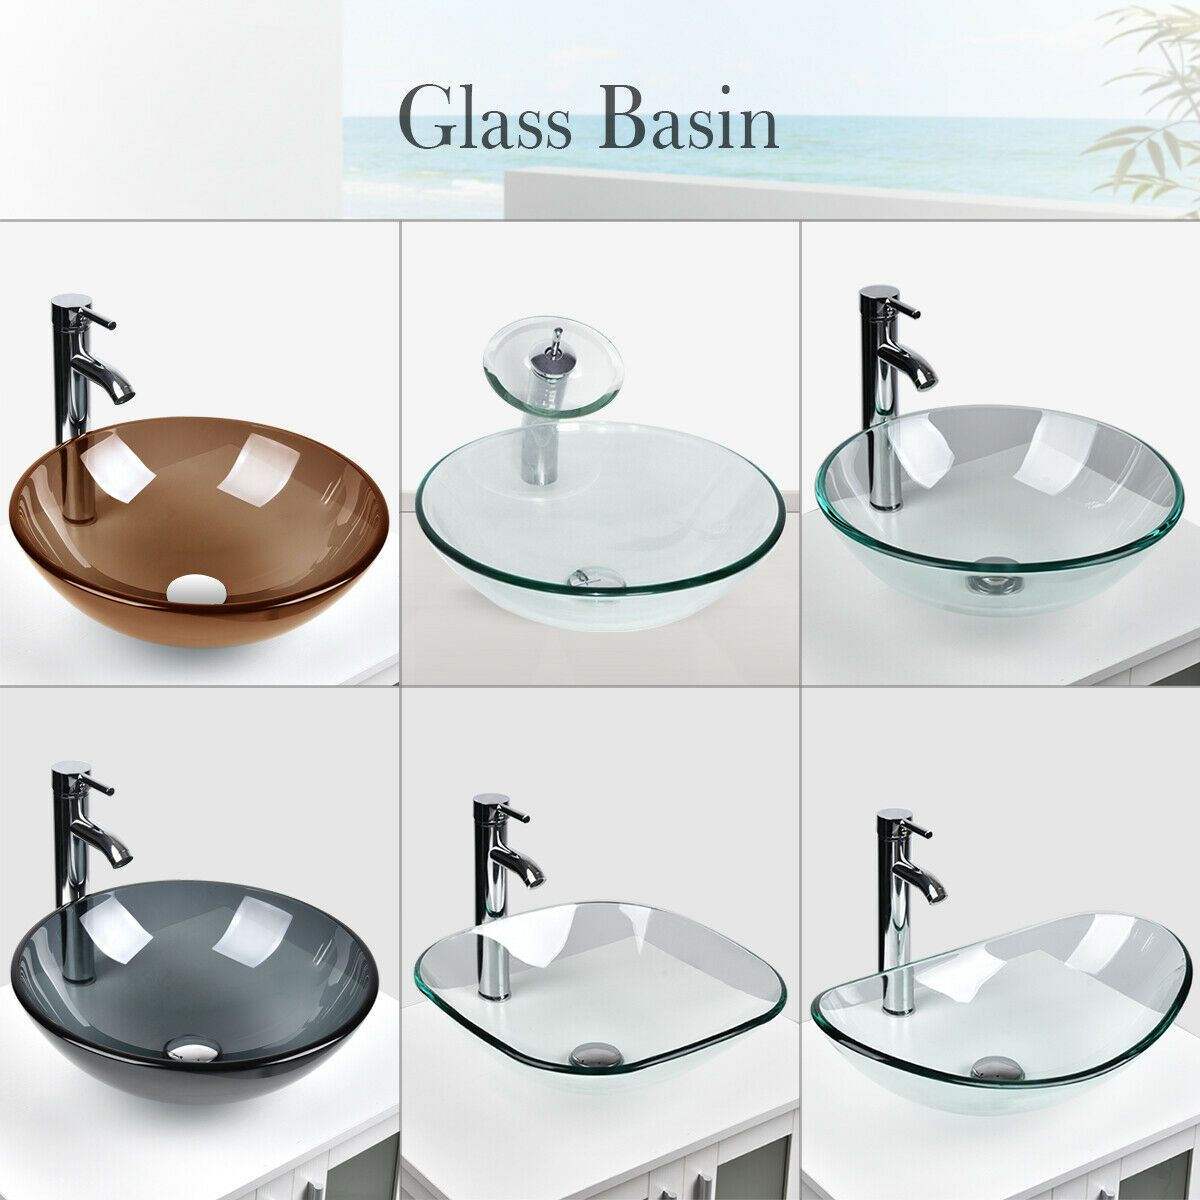 Bathroom Tempered Clear Glass Vessel Sink Bath Basin Bowl Faucet Drain Combo Us Bathroom Sinks Ideas With Images Glass Vessel Sinks Bathroom Sink Vessel Sink Bathroom